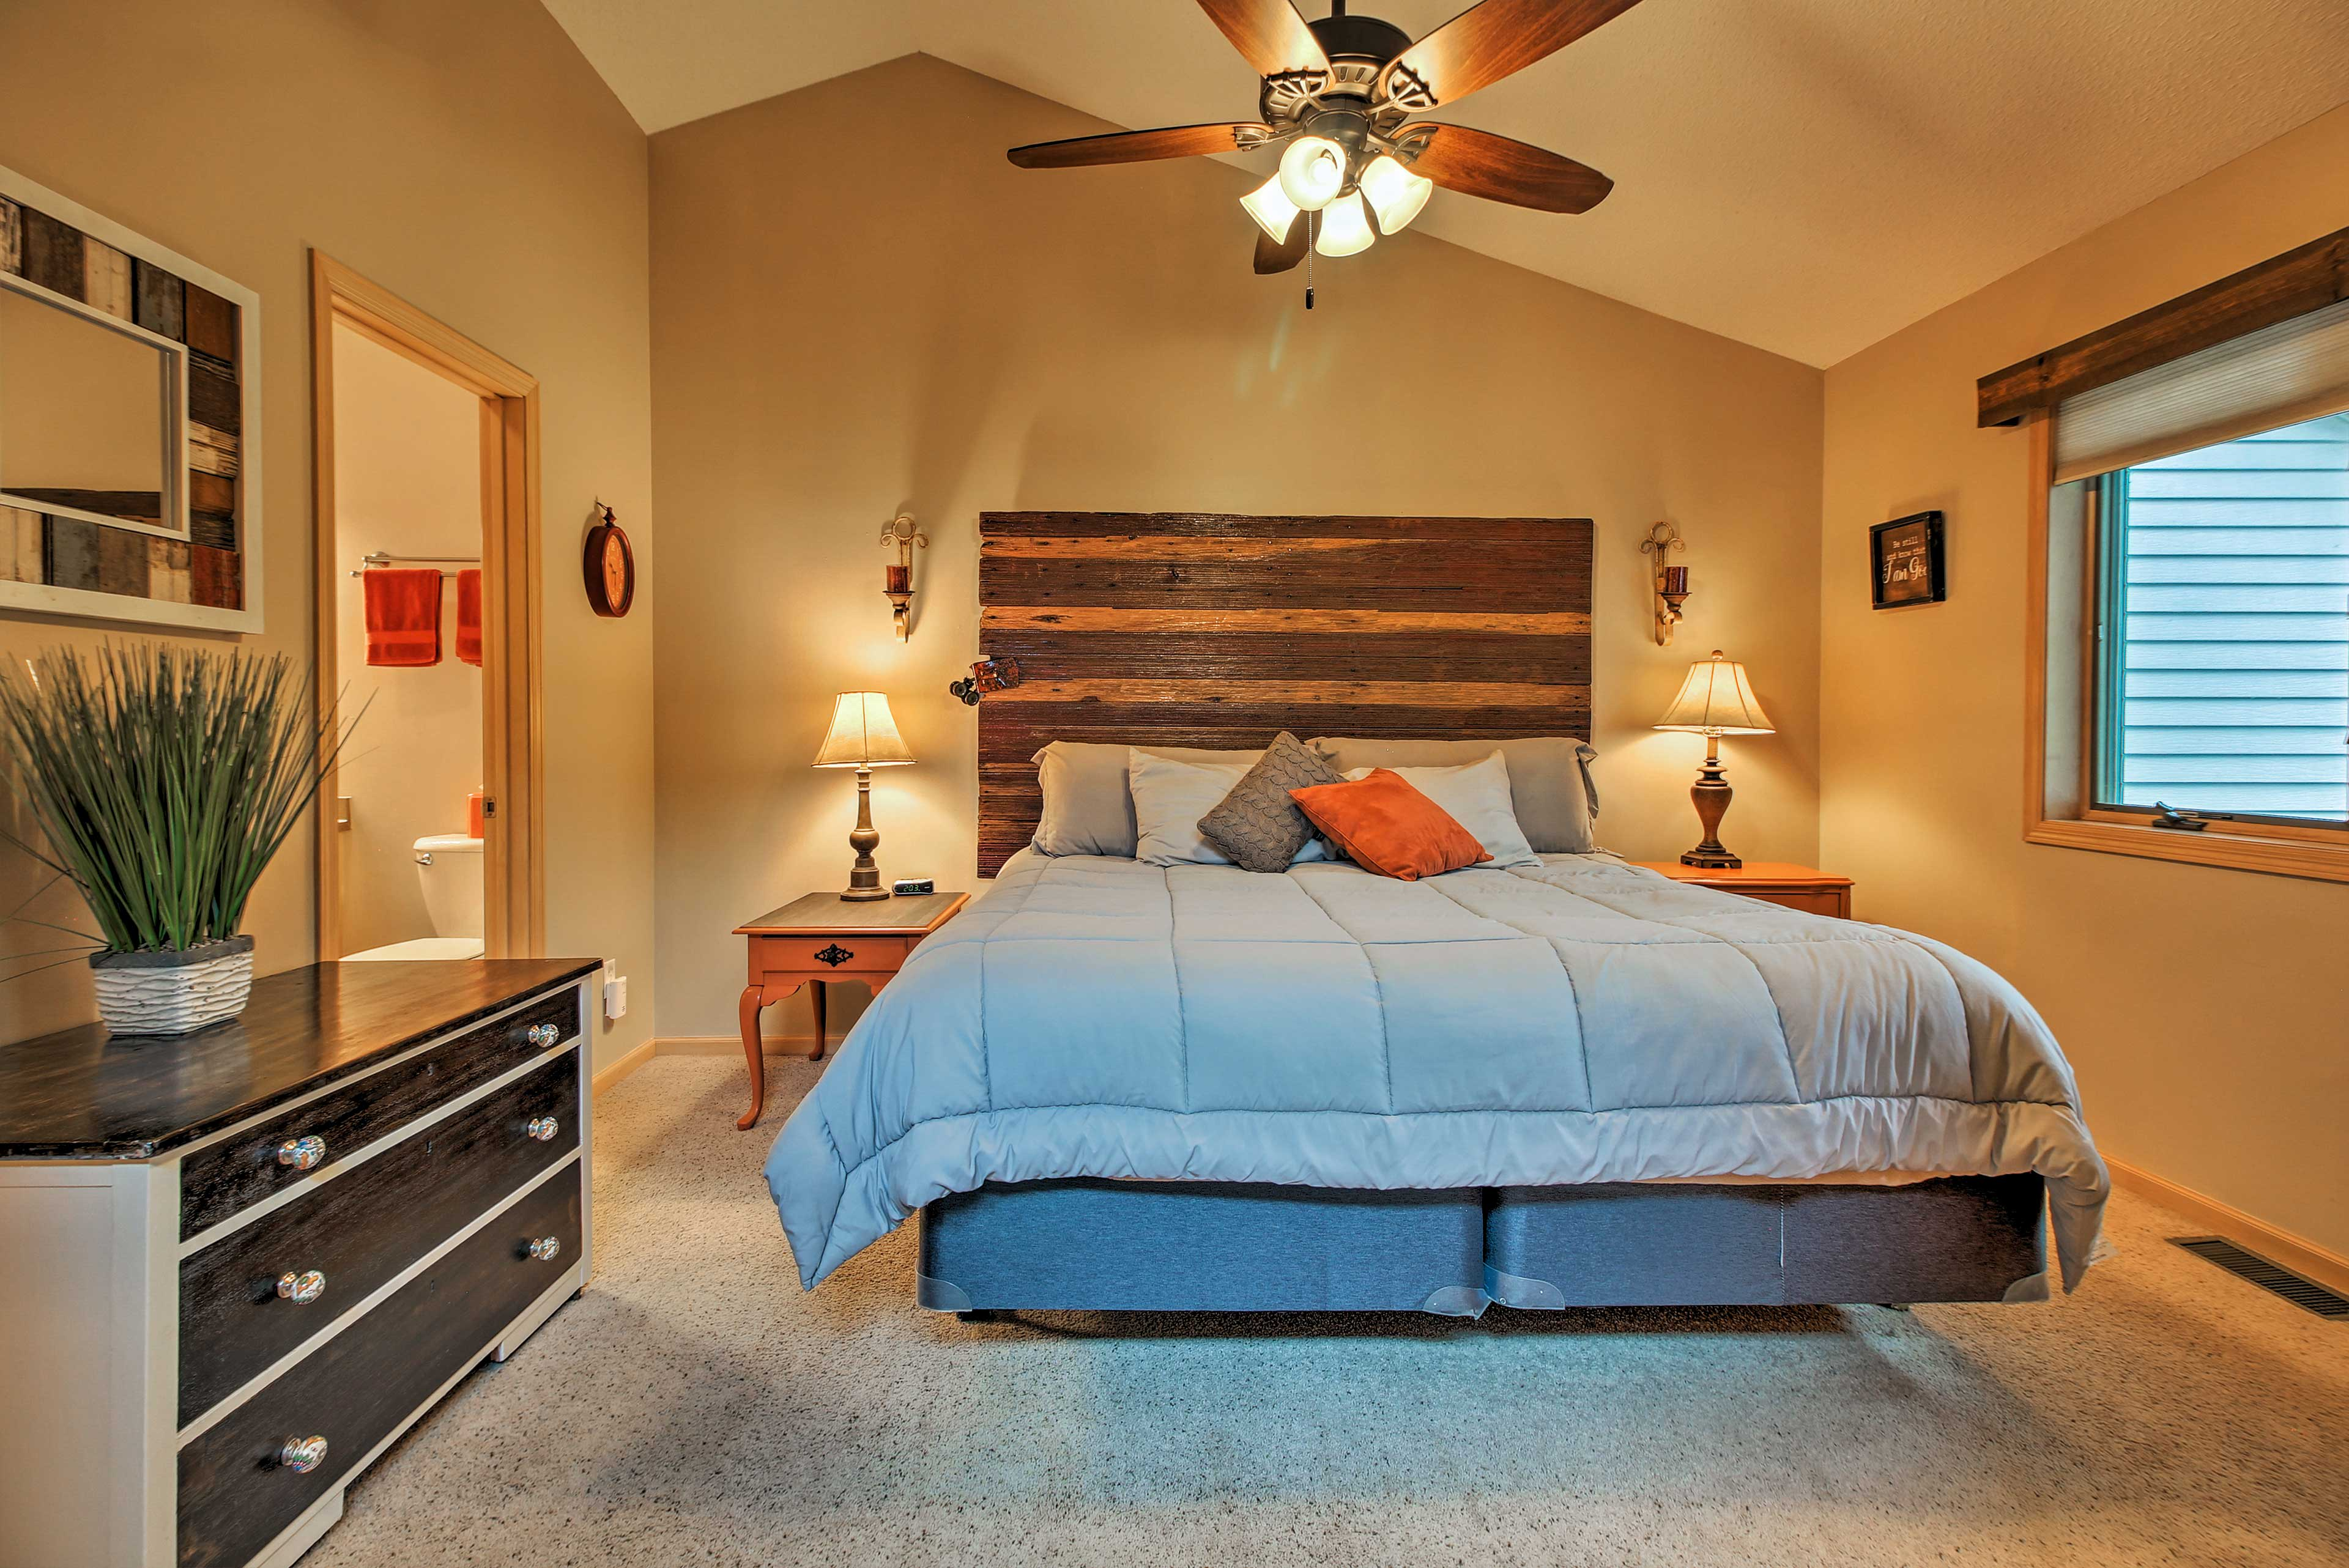 The master bedroom boasts a comfortable king mattress.